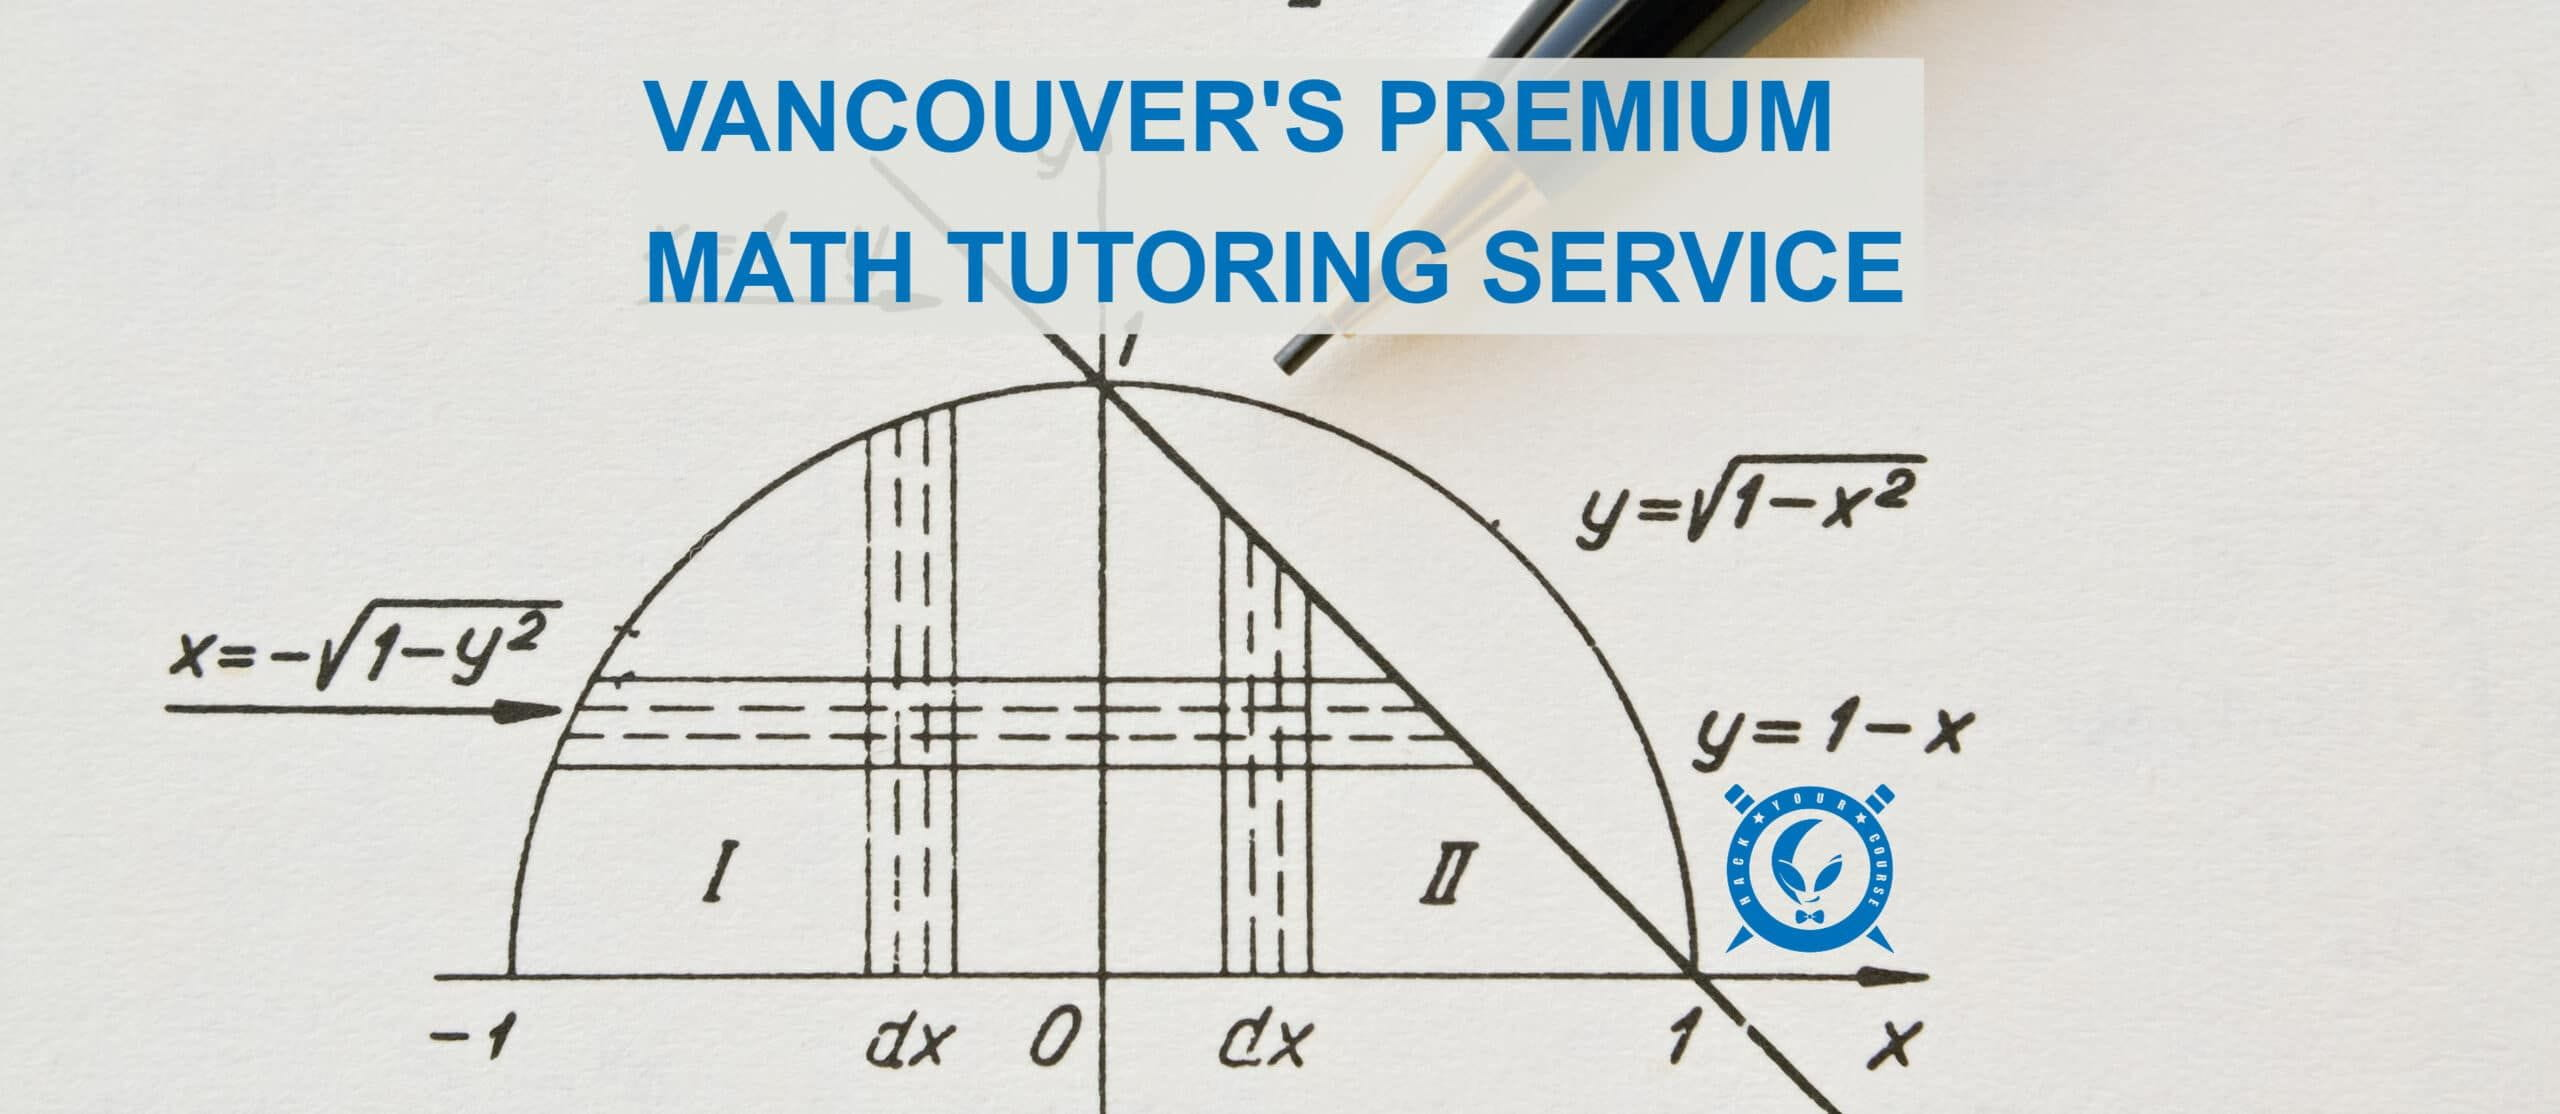 MATH TUTORING WITH HACK YOUR COURSE AP AND IB TUTORING SERVICE IN VANCOUVER